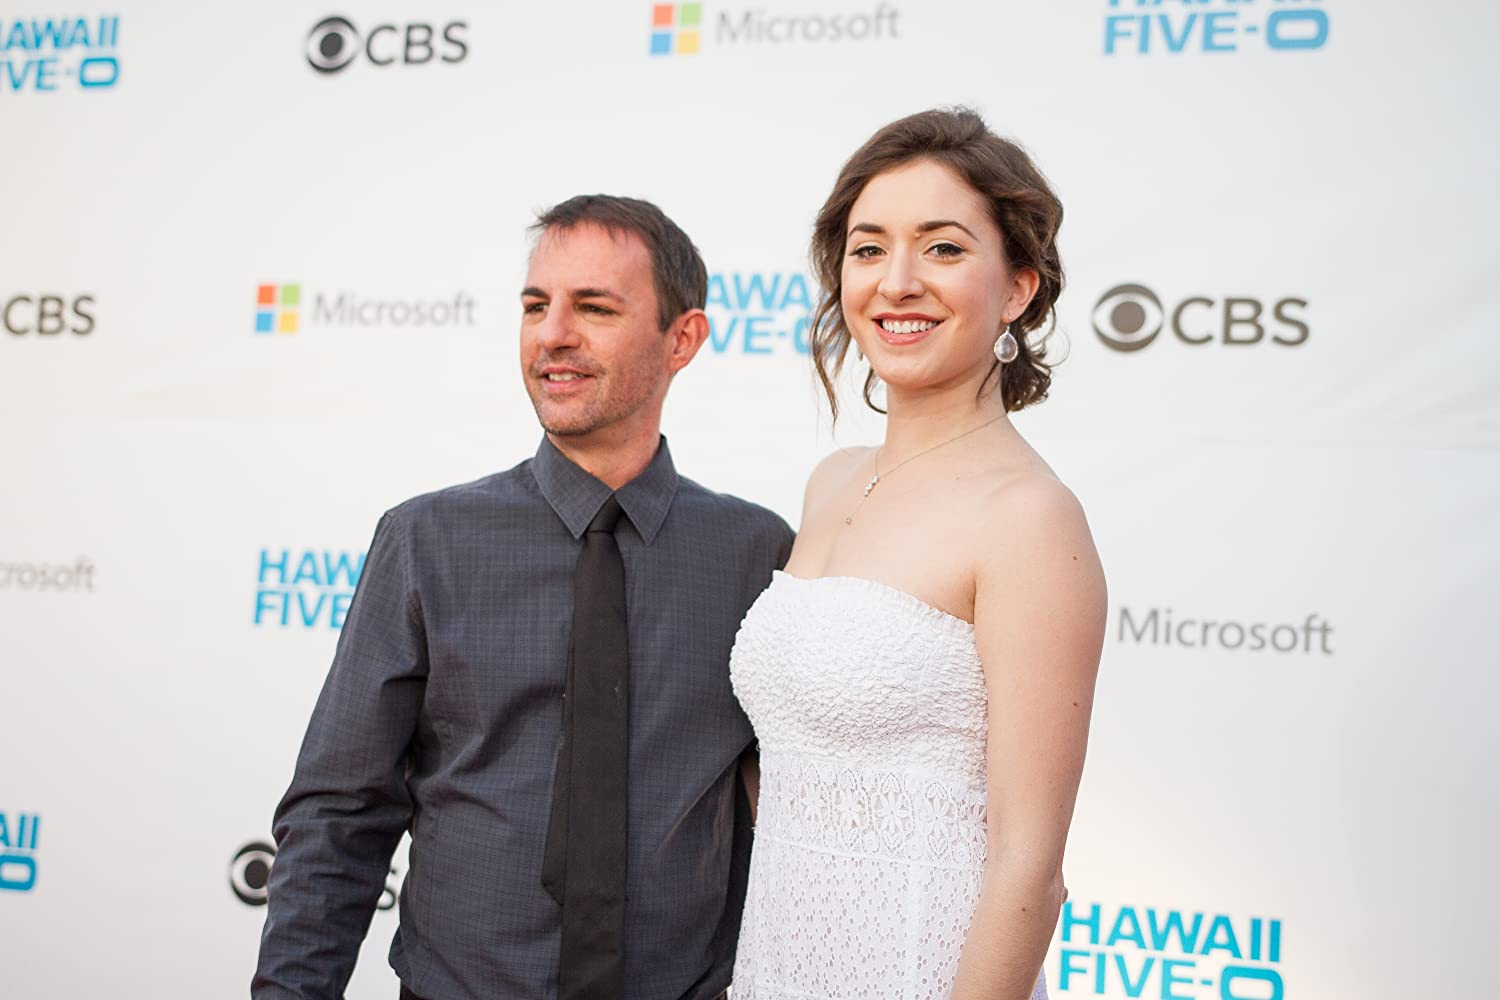 Roberto Orci And Adele Heather Taylor Attend The Hawaii Five  Sunset On The Beach